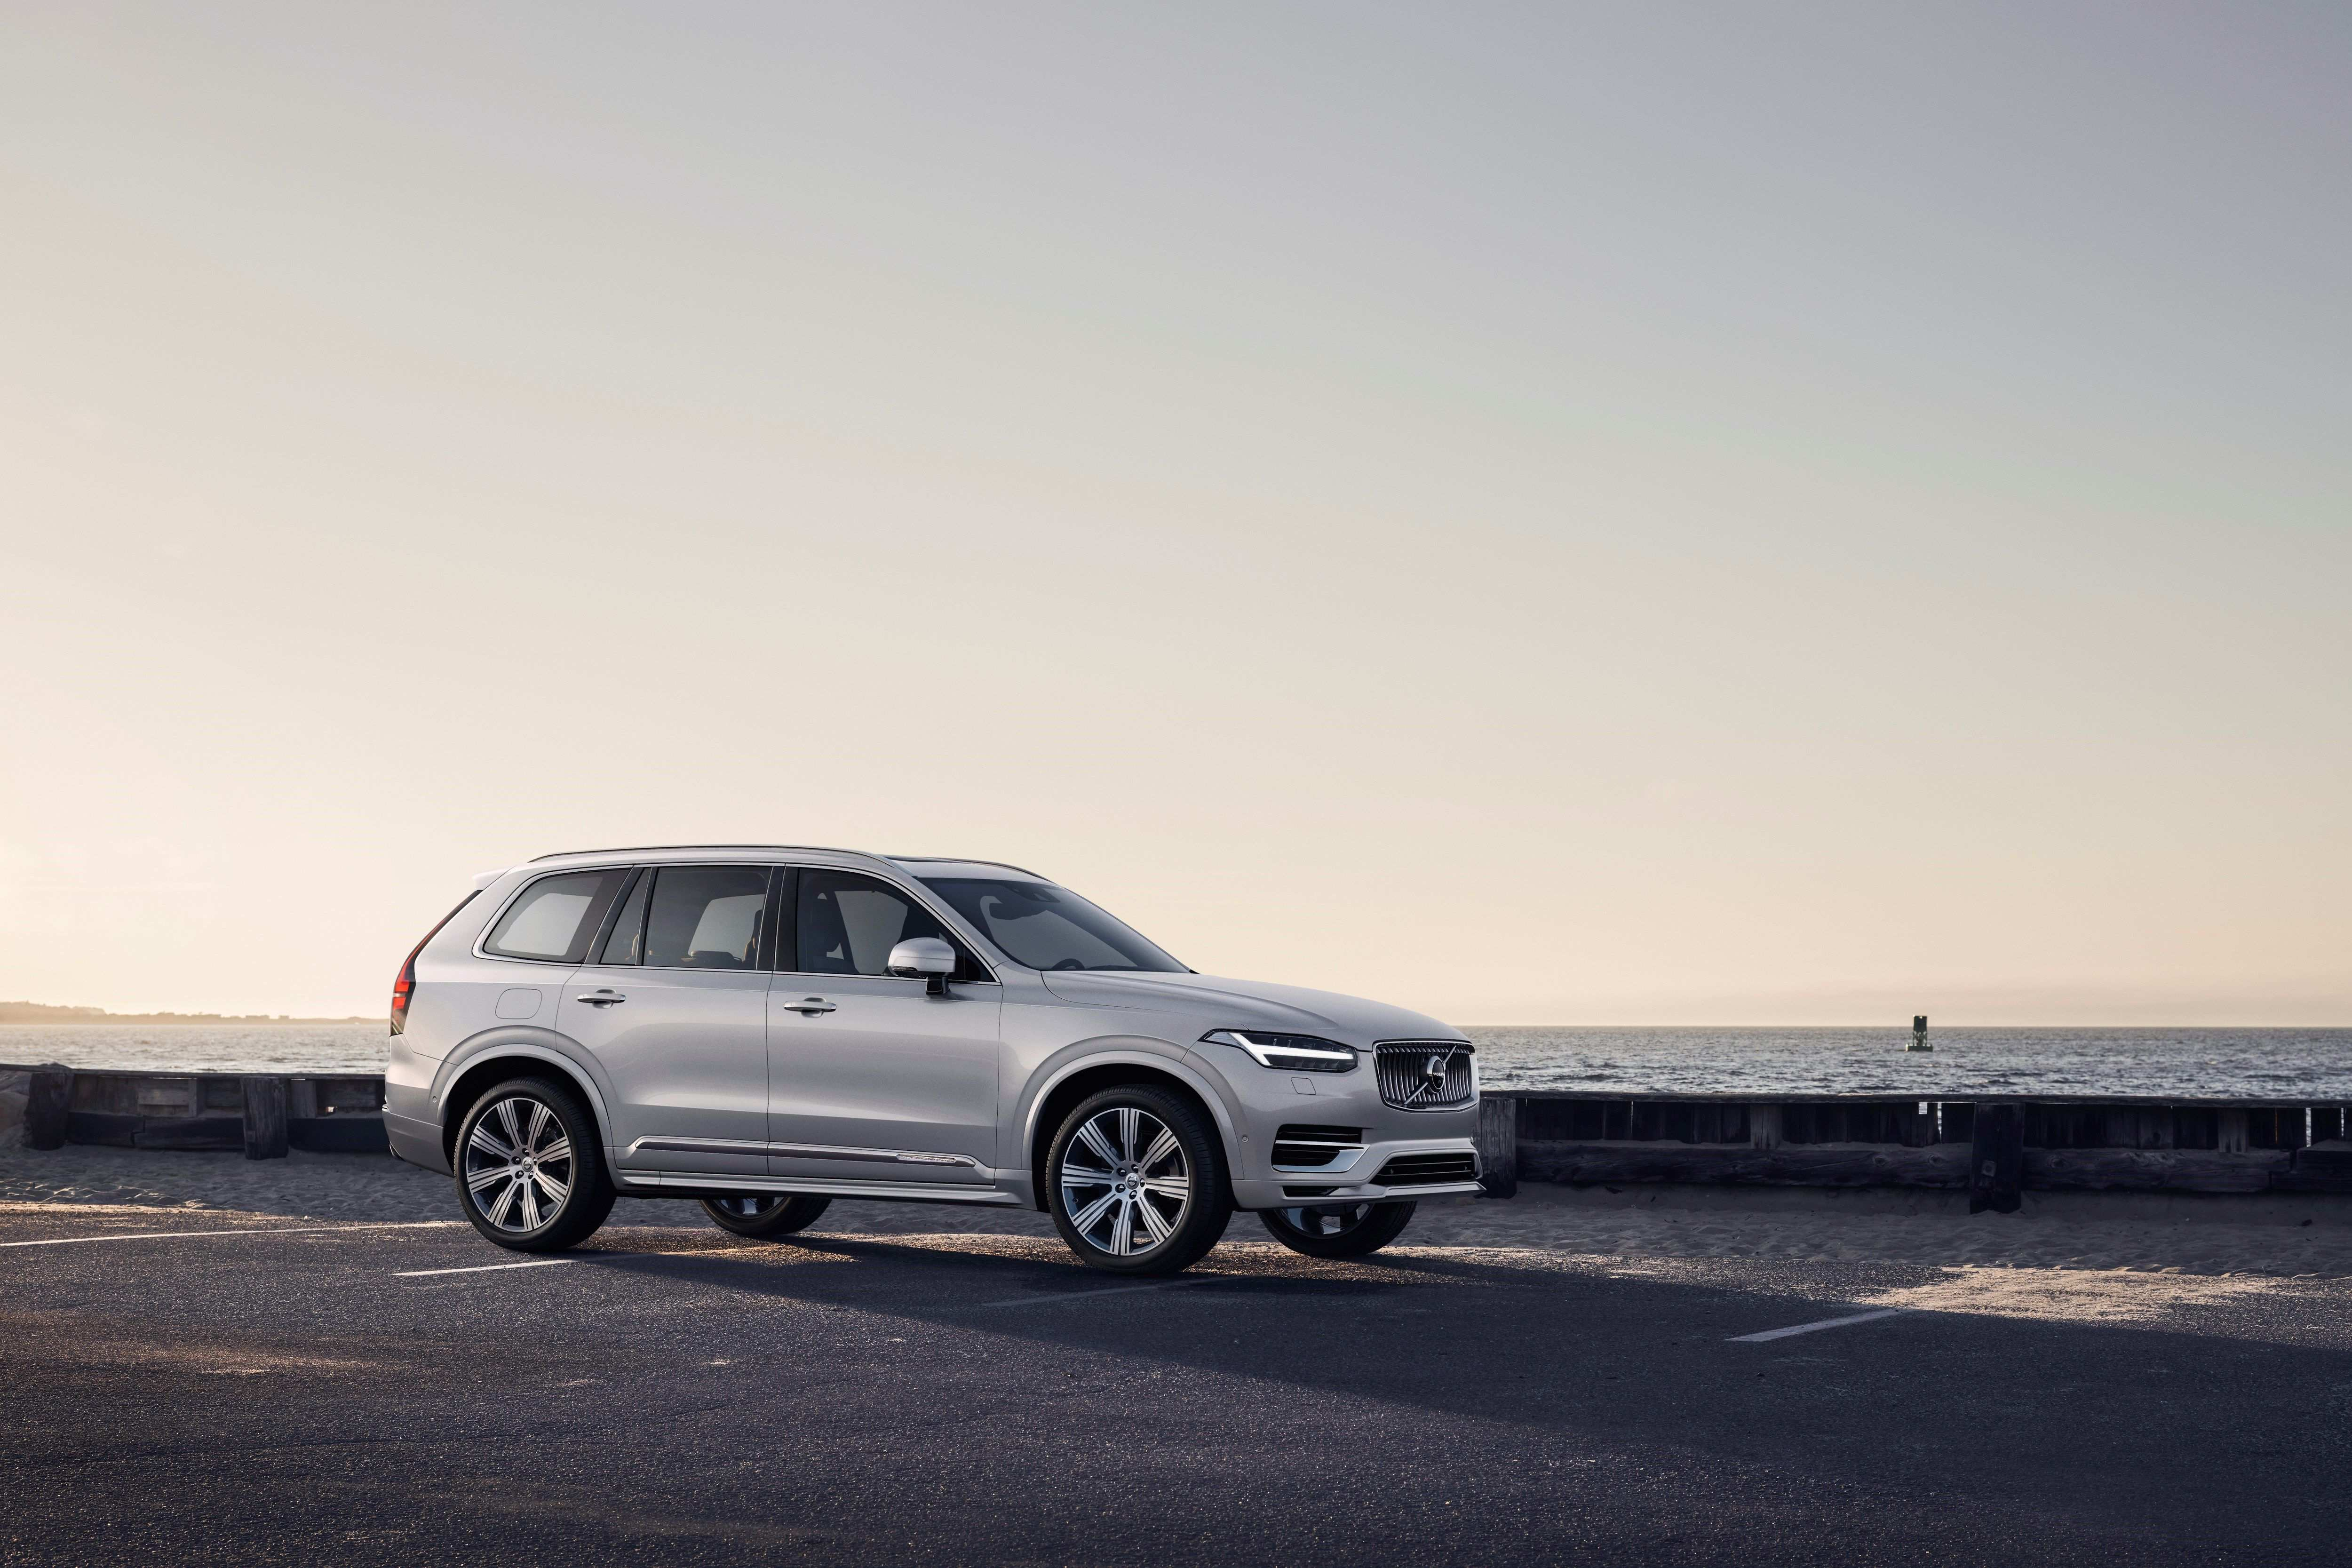 22 New Volvo V90 Model Year 2020 Price Design And Review